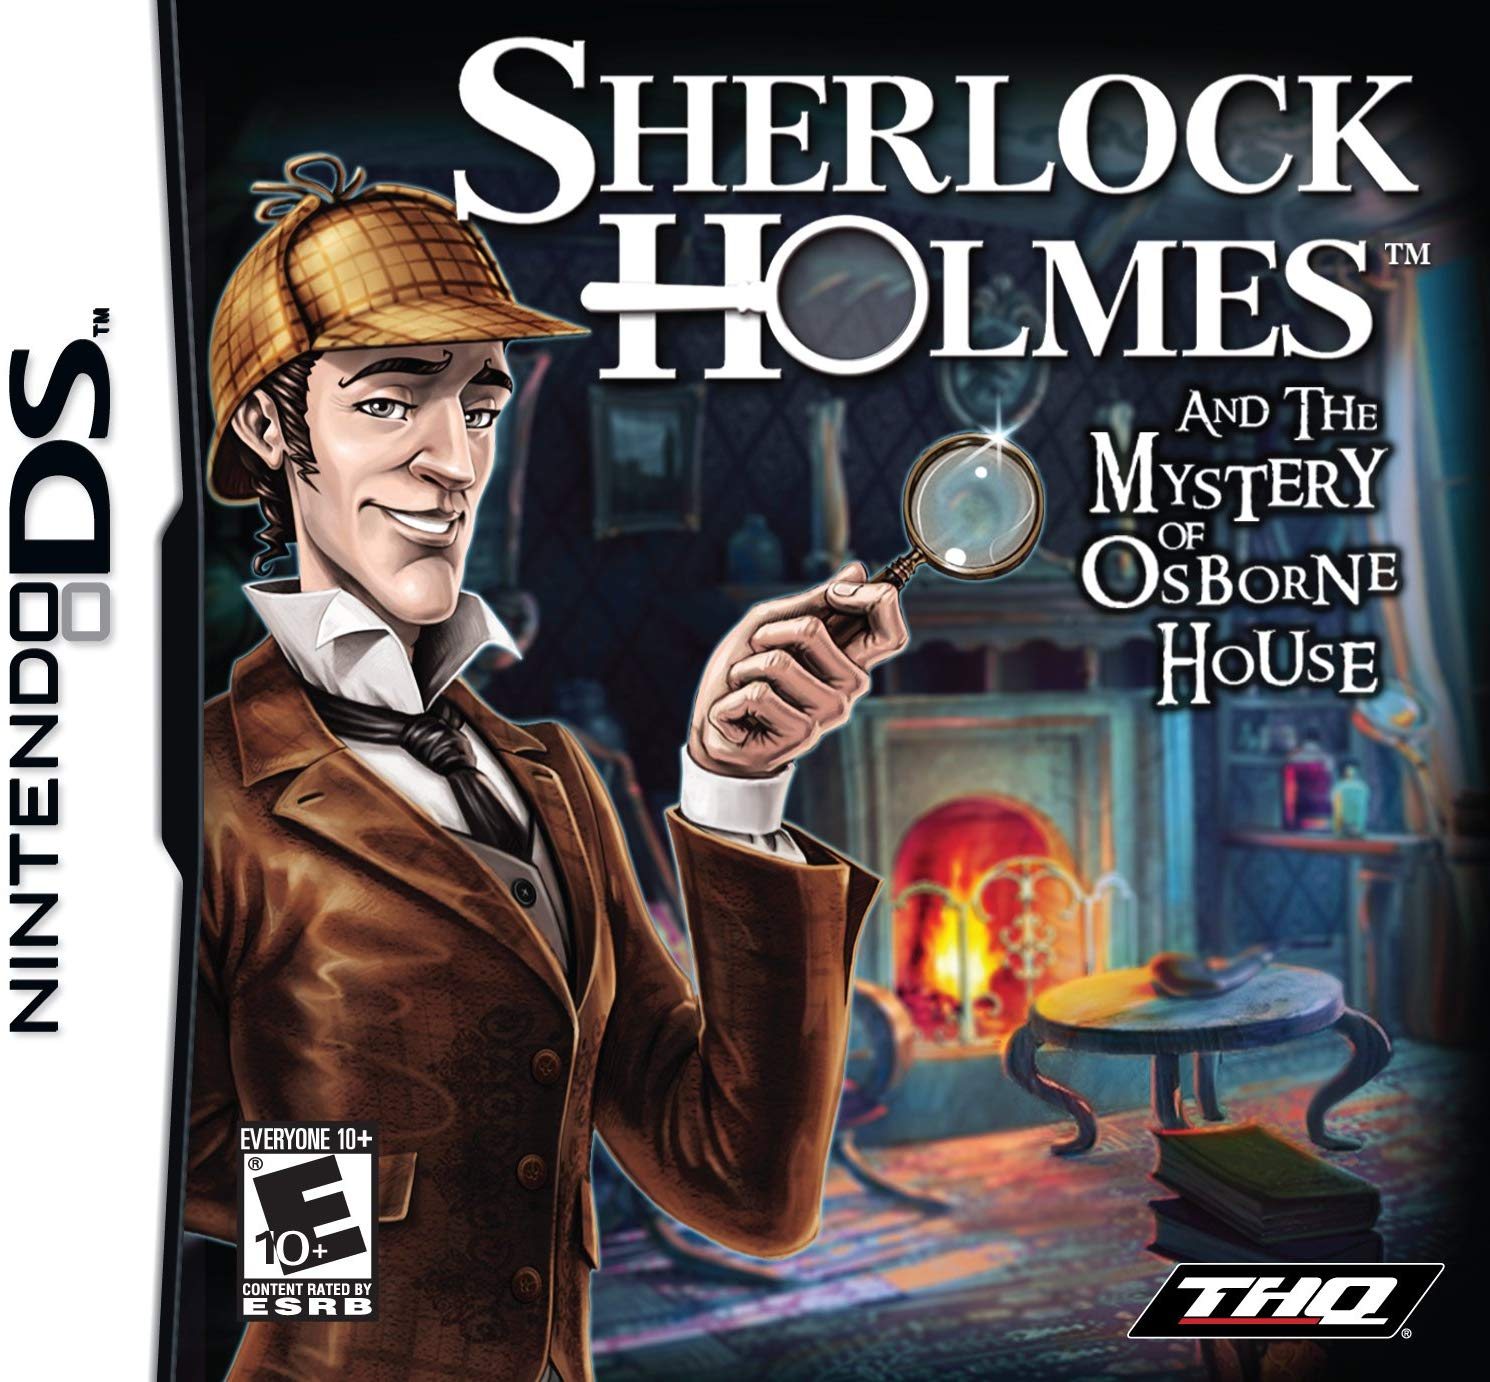 Sherlock Holmes and the Mystery of Osborne House0